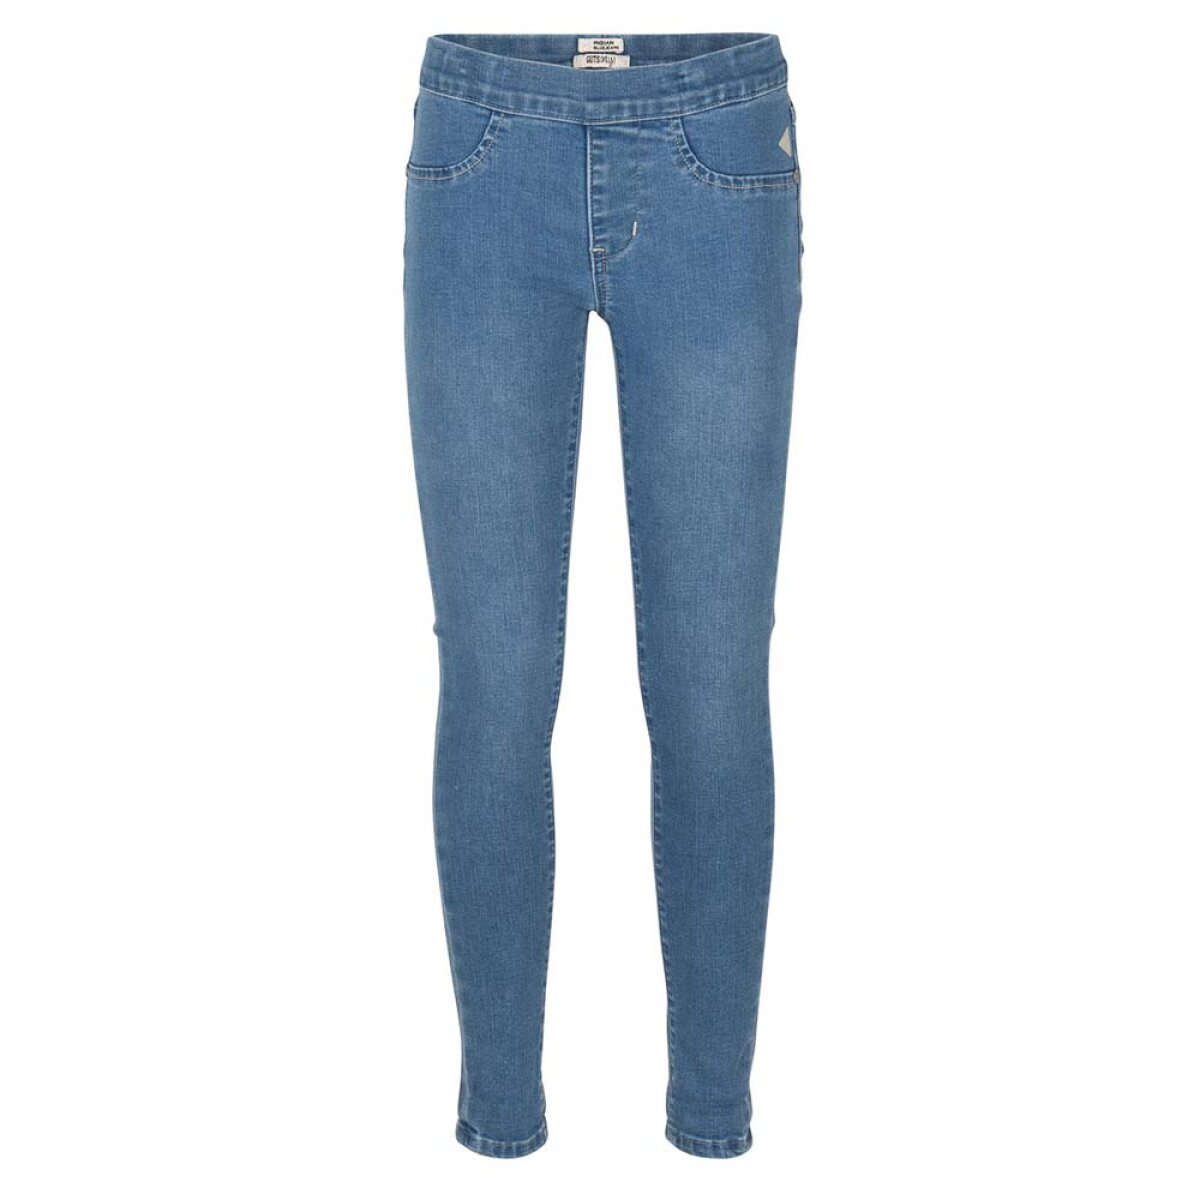 Indian Blue Jeans meisjes tregging supper skinny Amy IBG21-2180 blauw